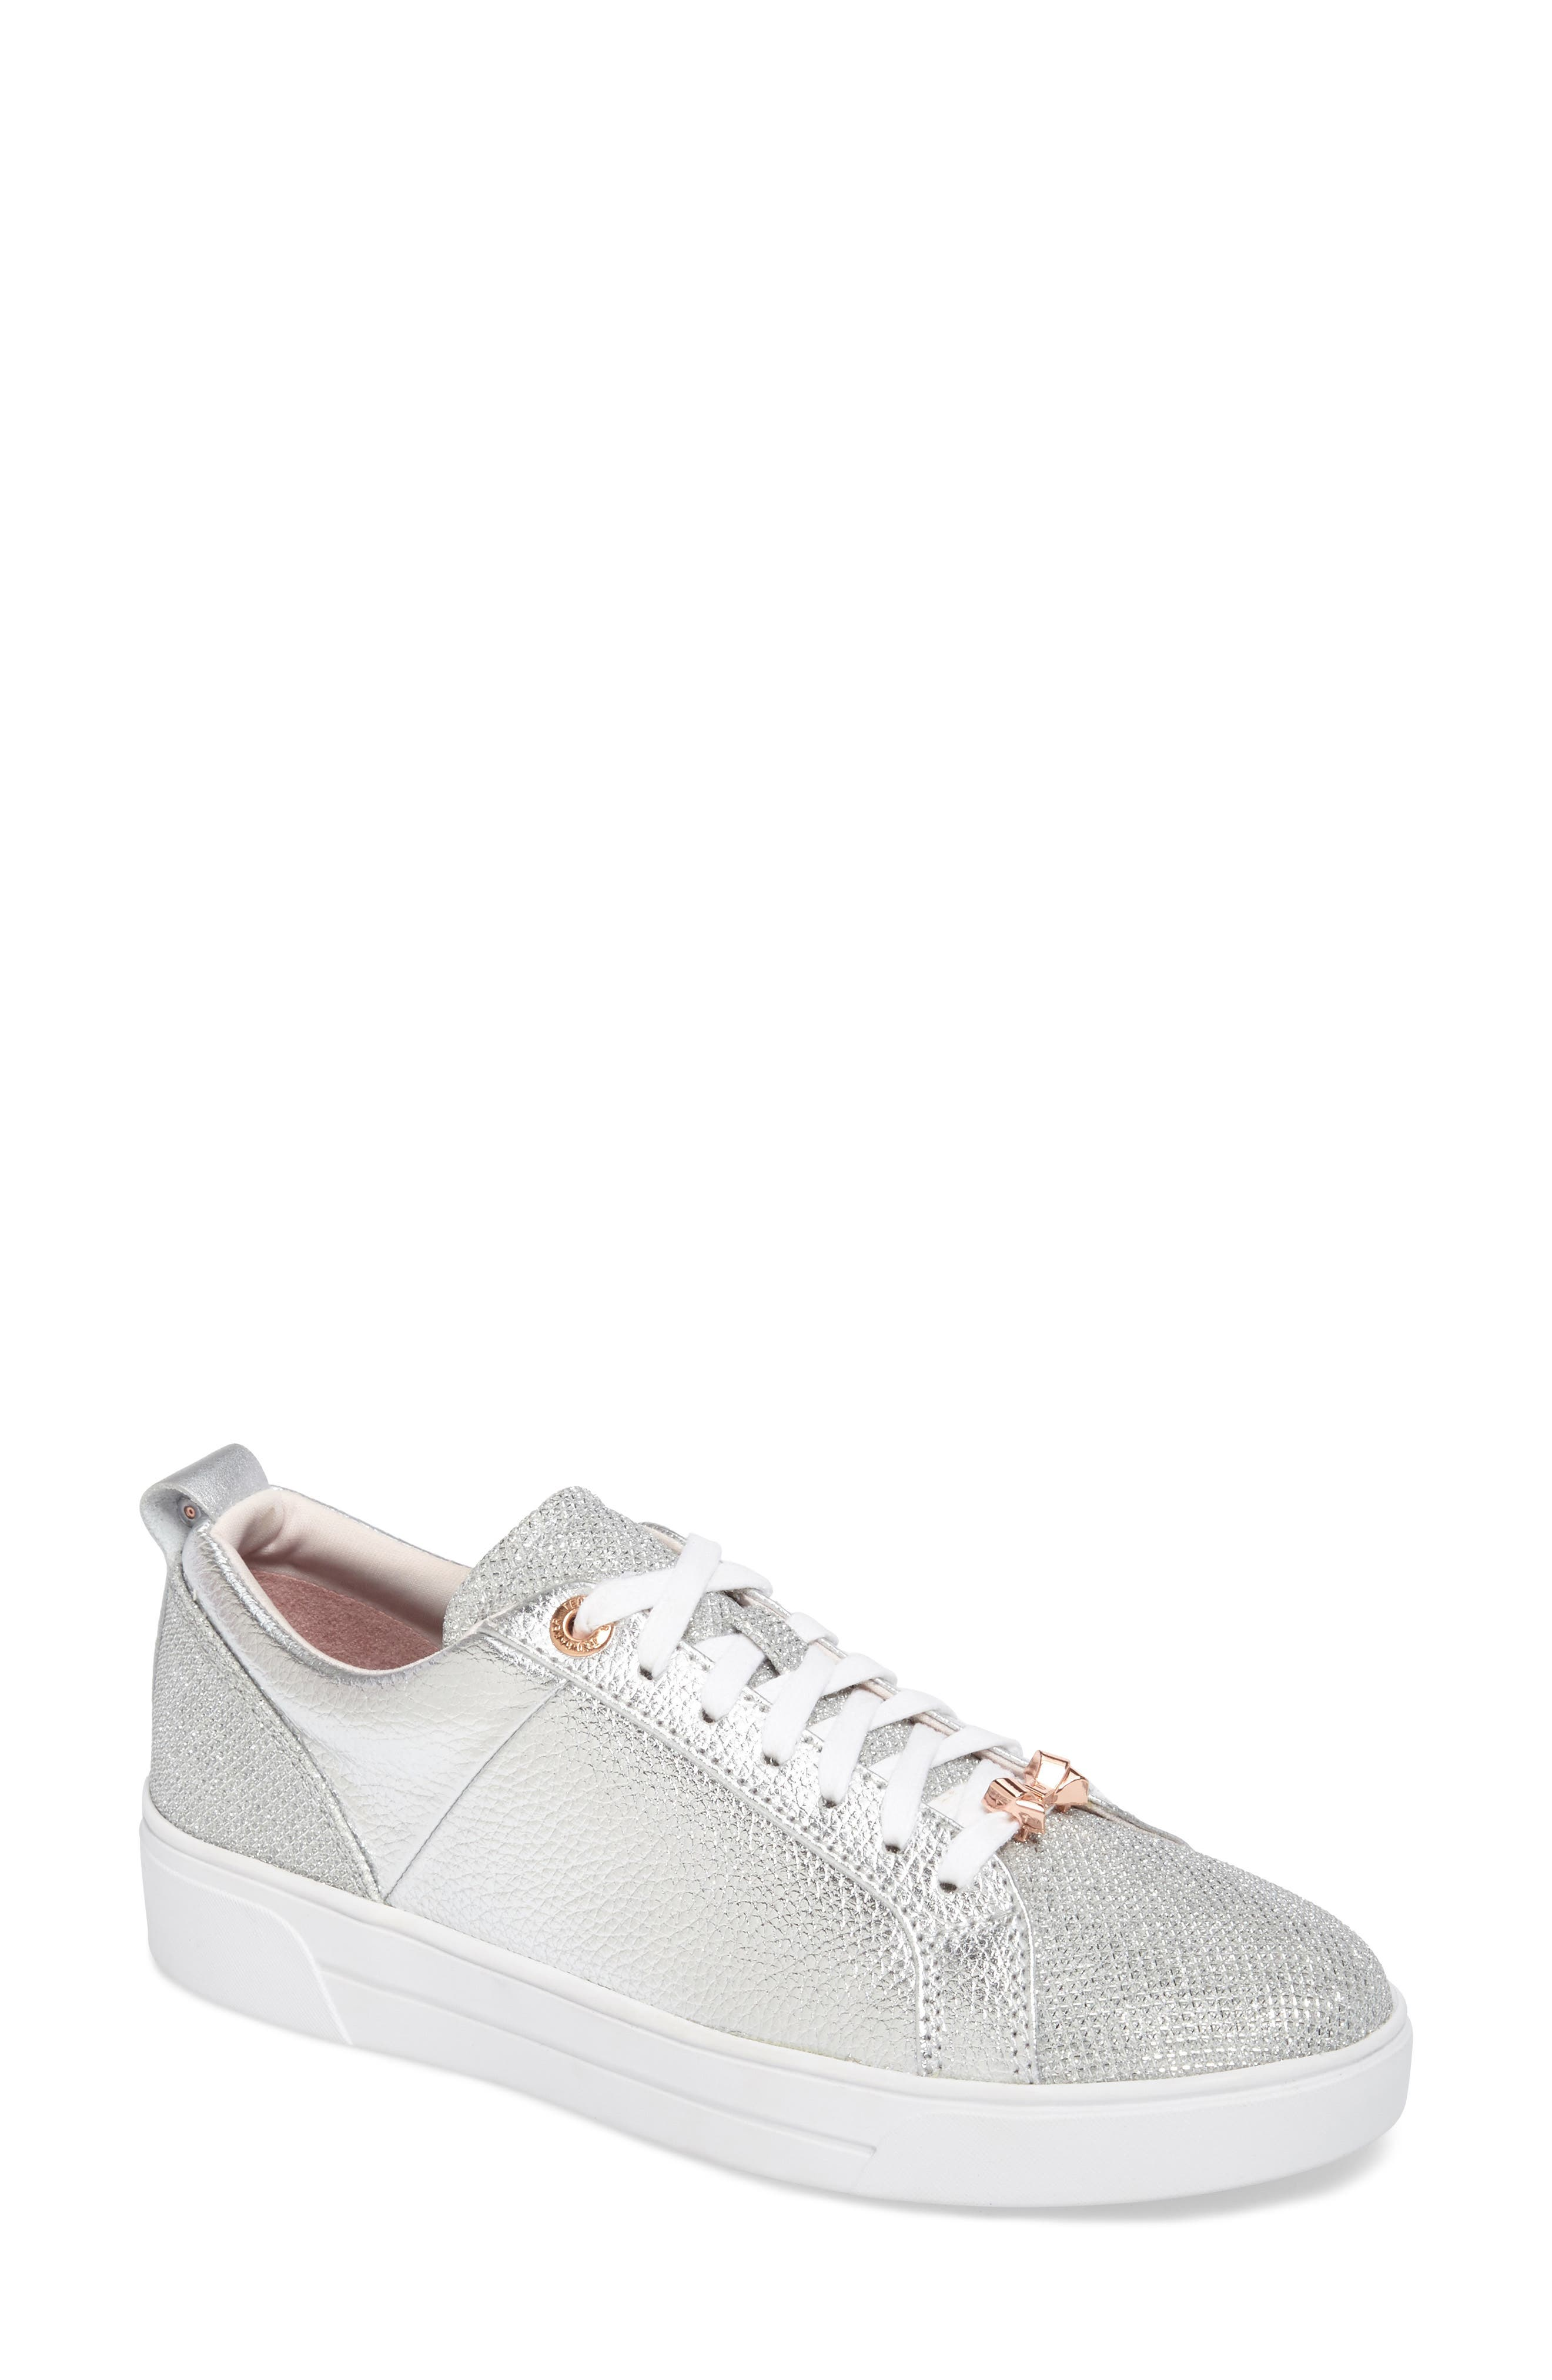 Alternate Image 1 Selected - Ted Baker London Kulei Sneaker (Women)